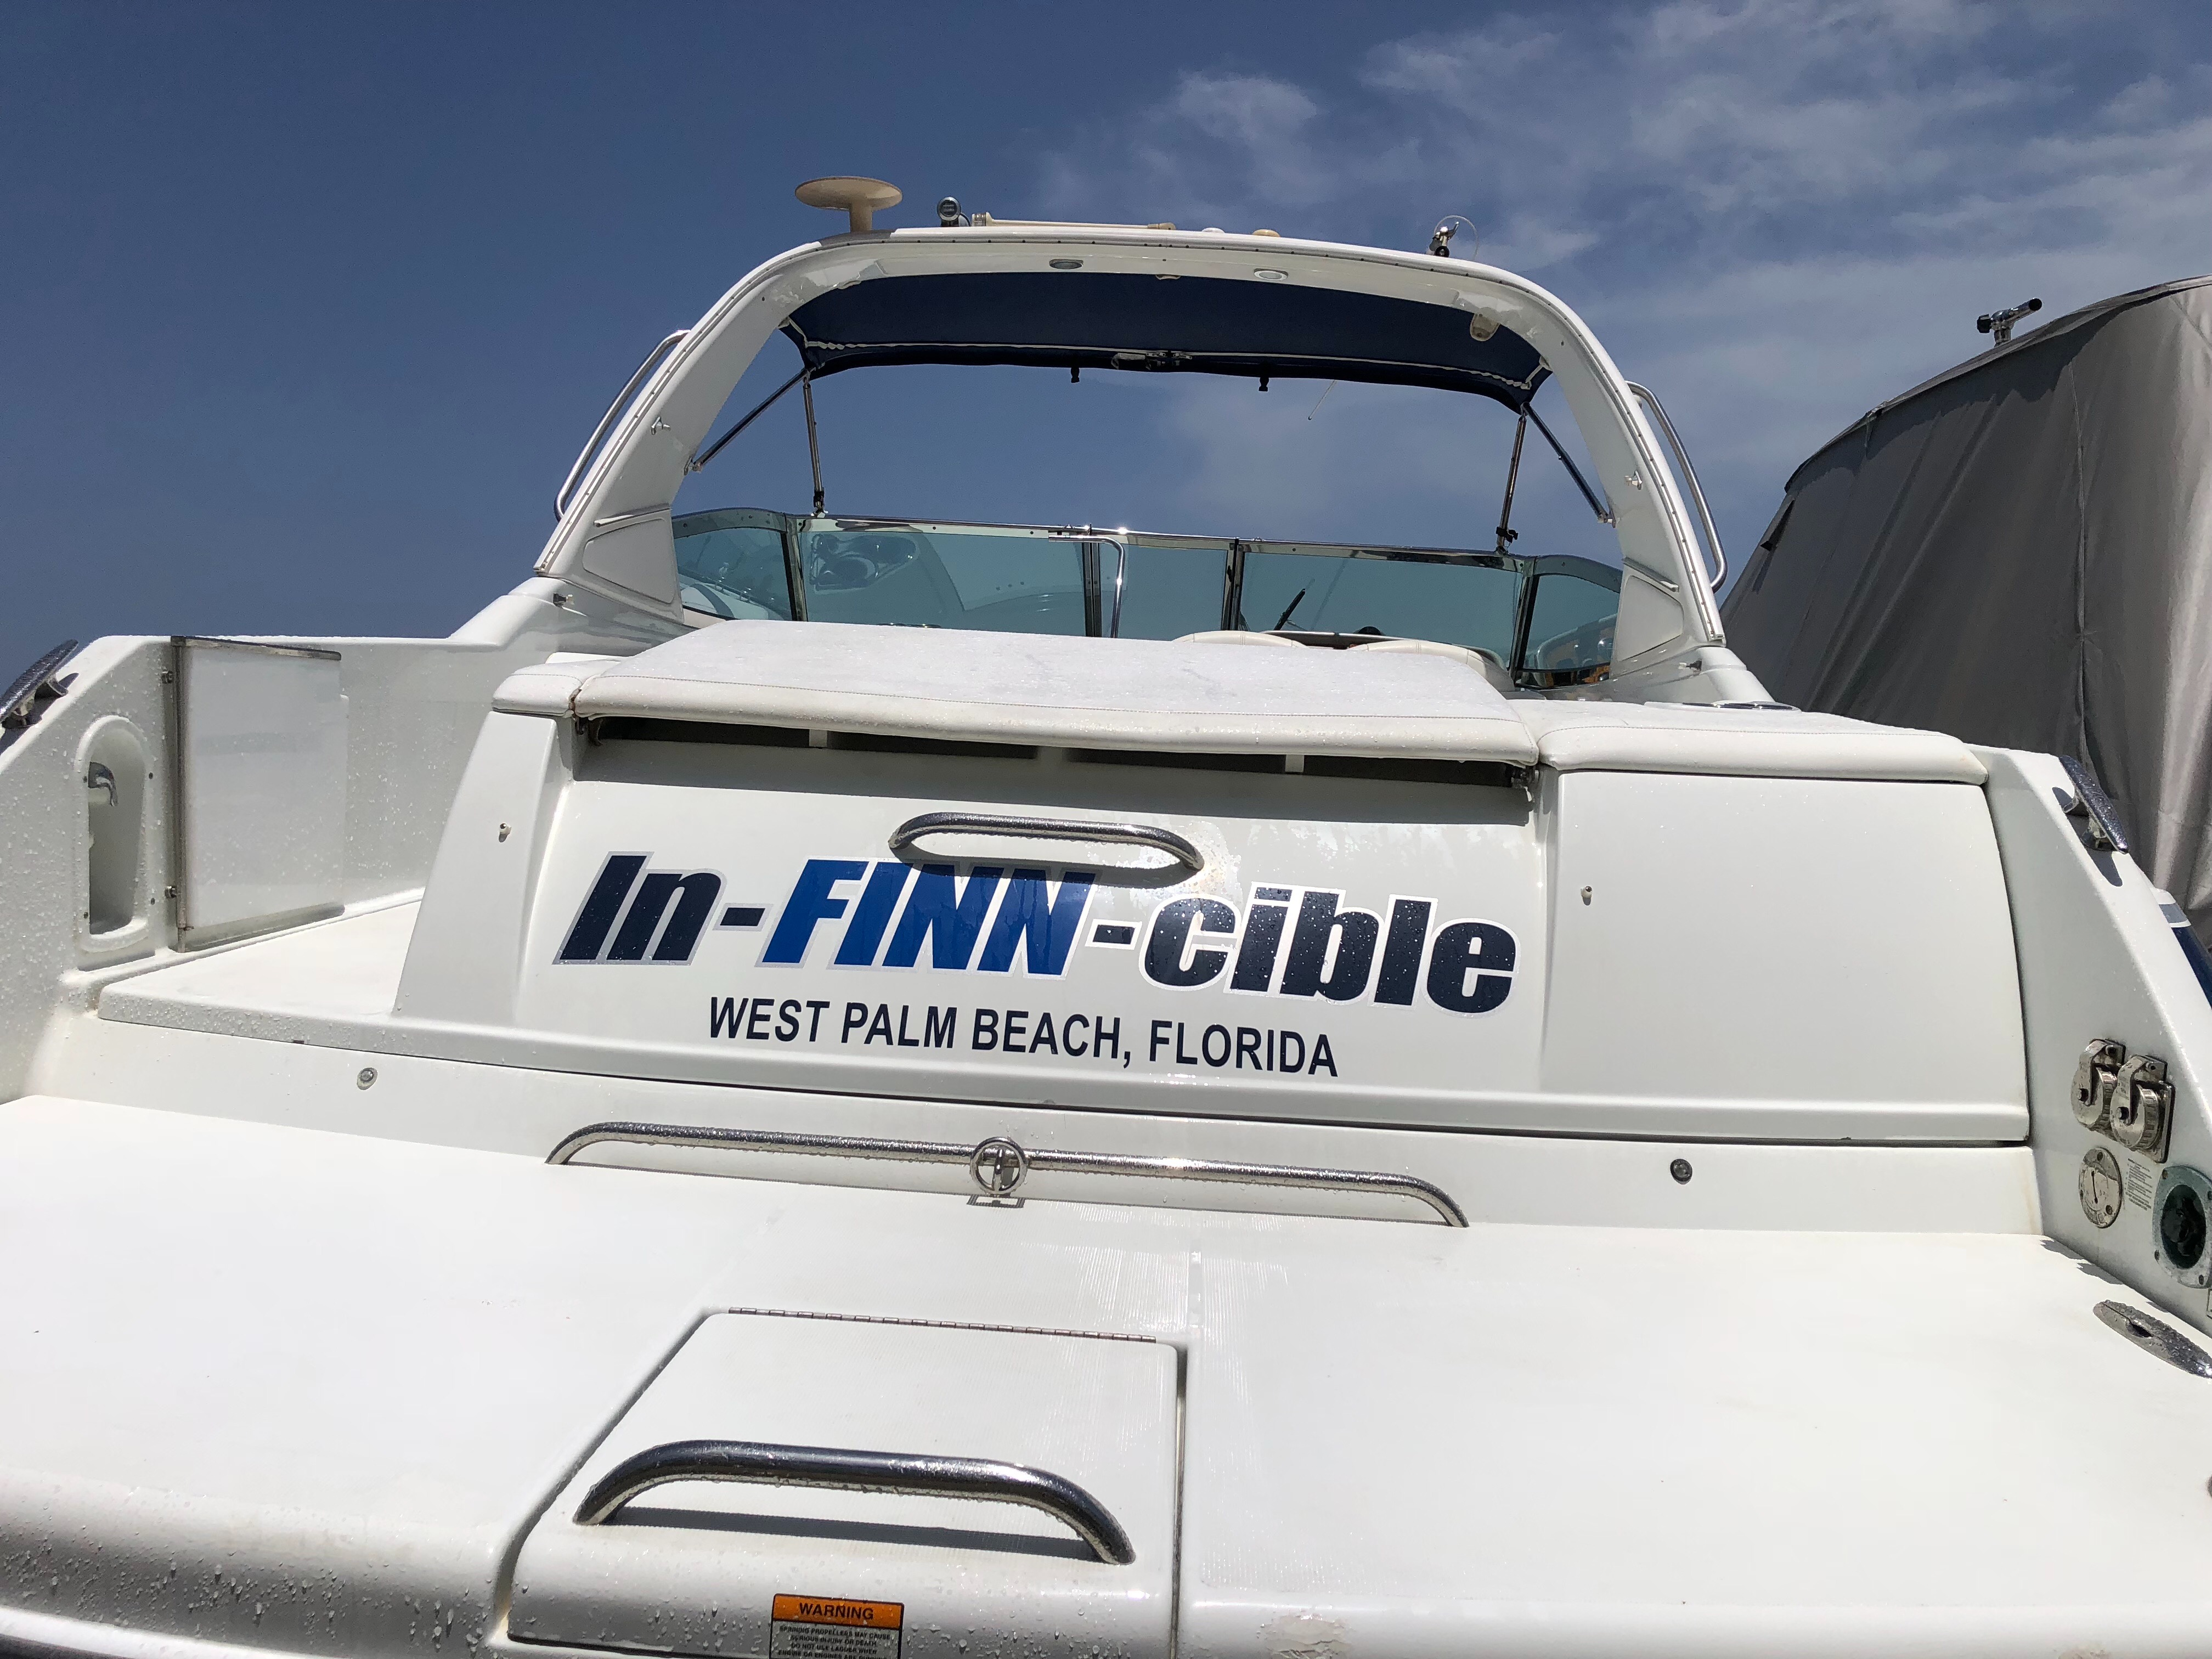 Boats for sale in 33404 - Boat Trader